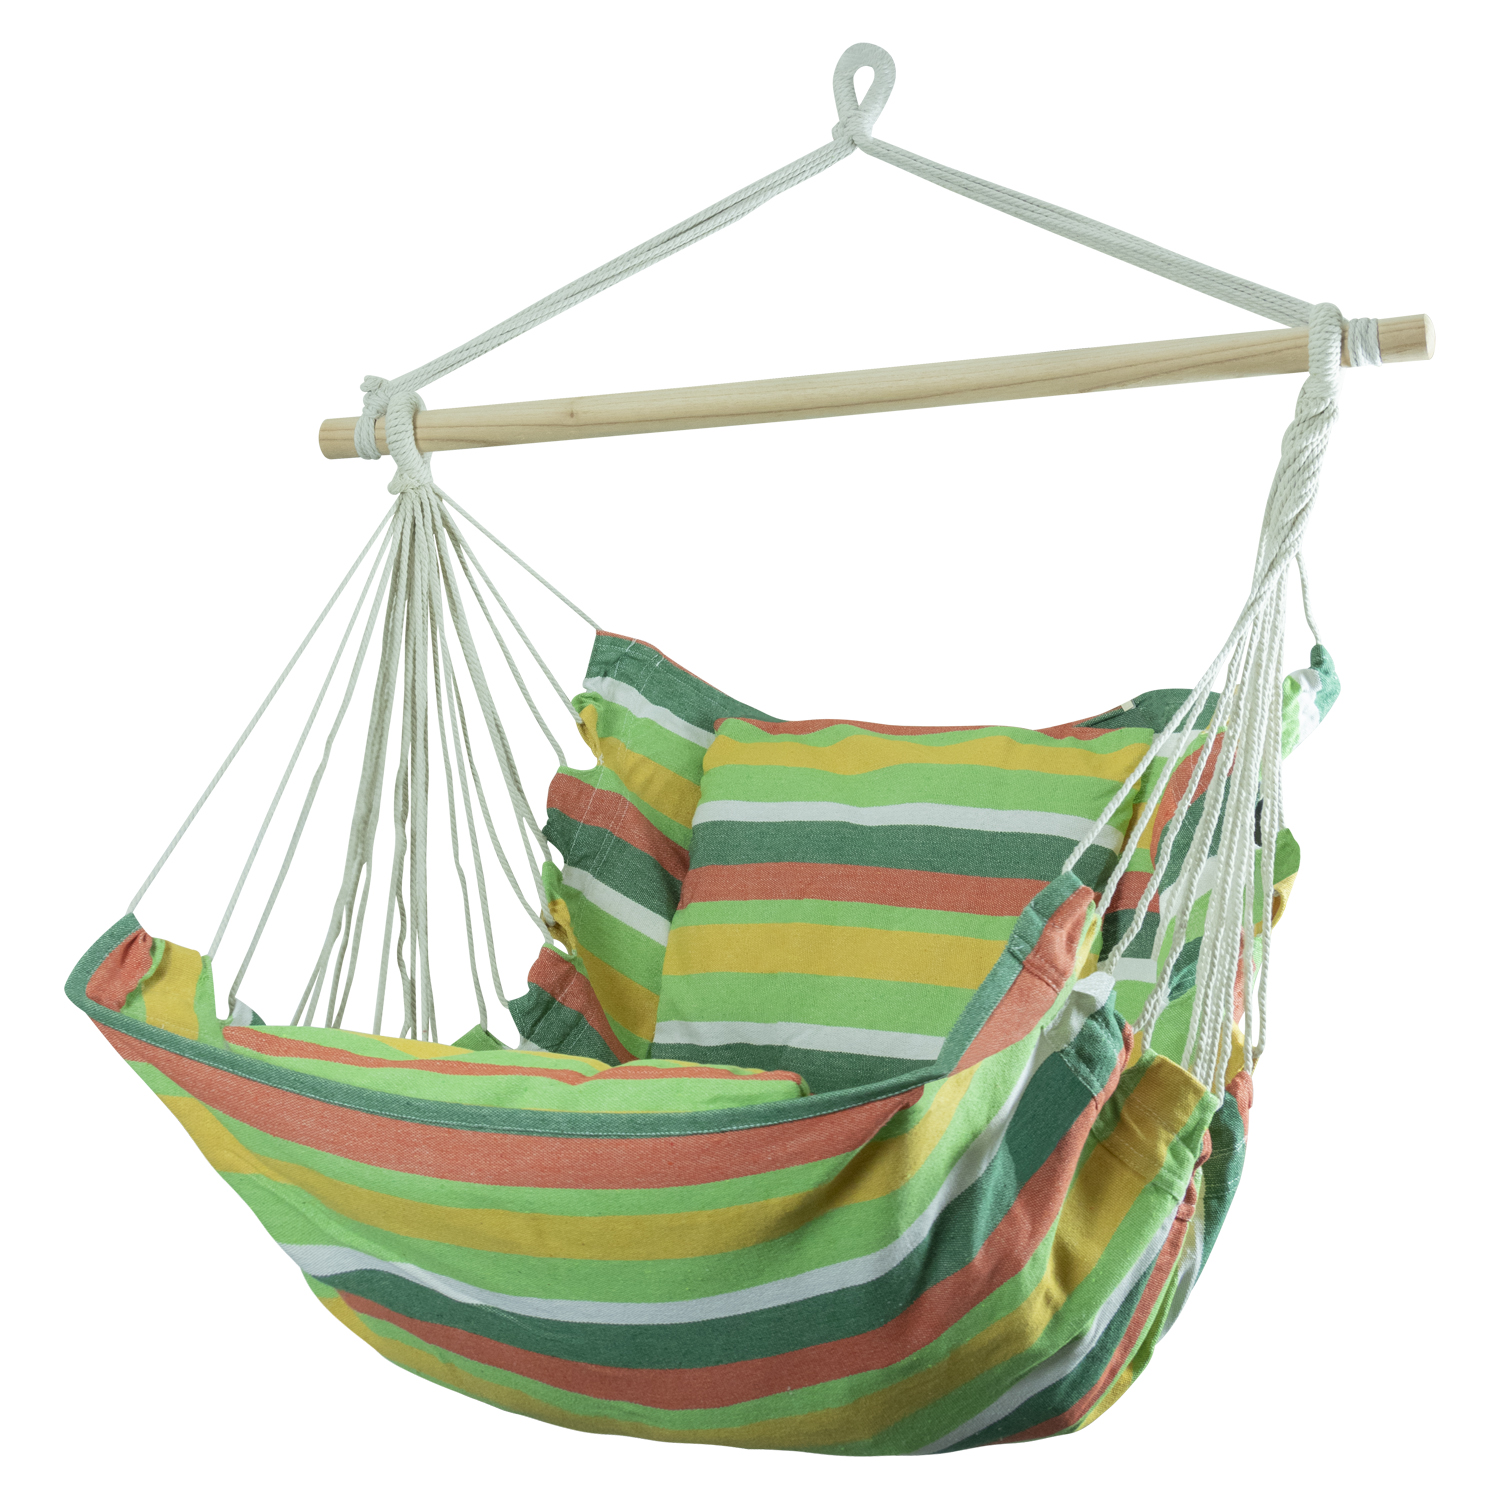 Hanging Chair Outdoor Details About Woodside Swinging Garden Hammock Chair Outdoor Wooden Rope Swing Seat